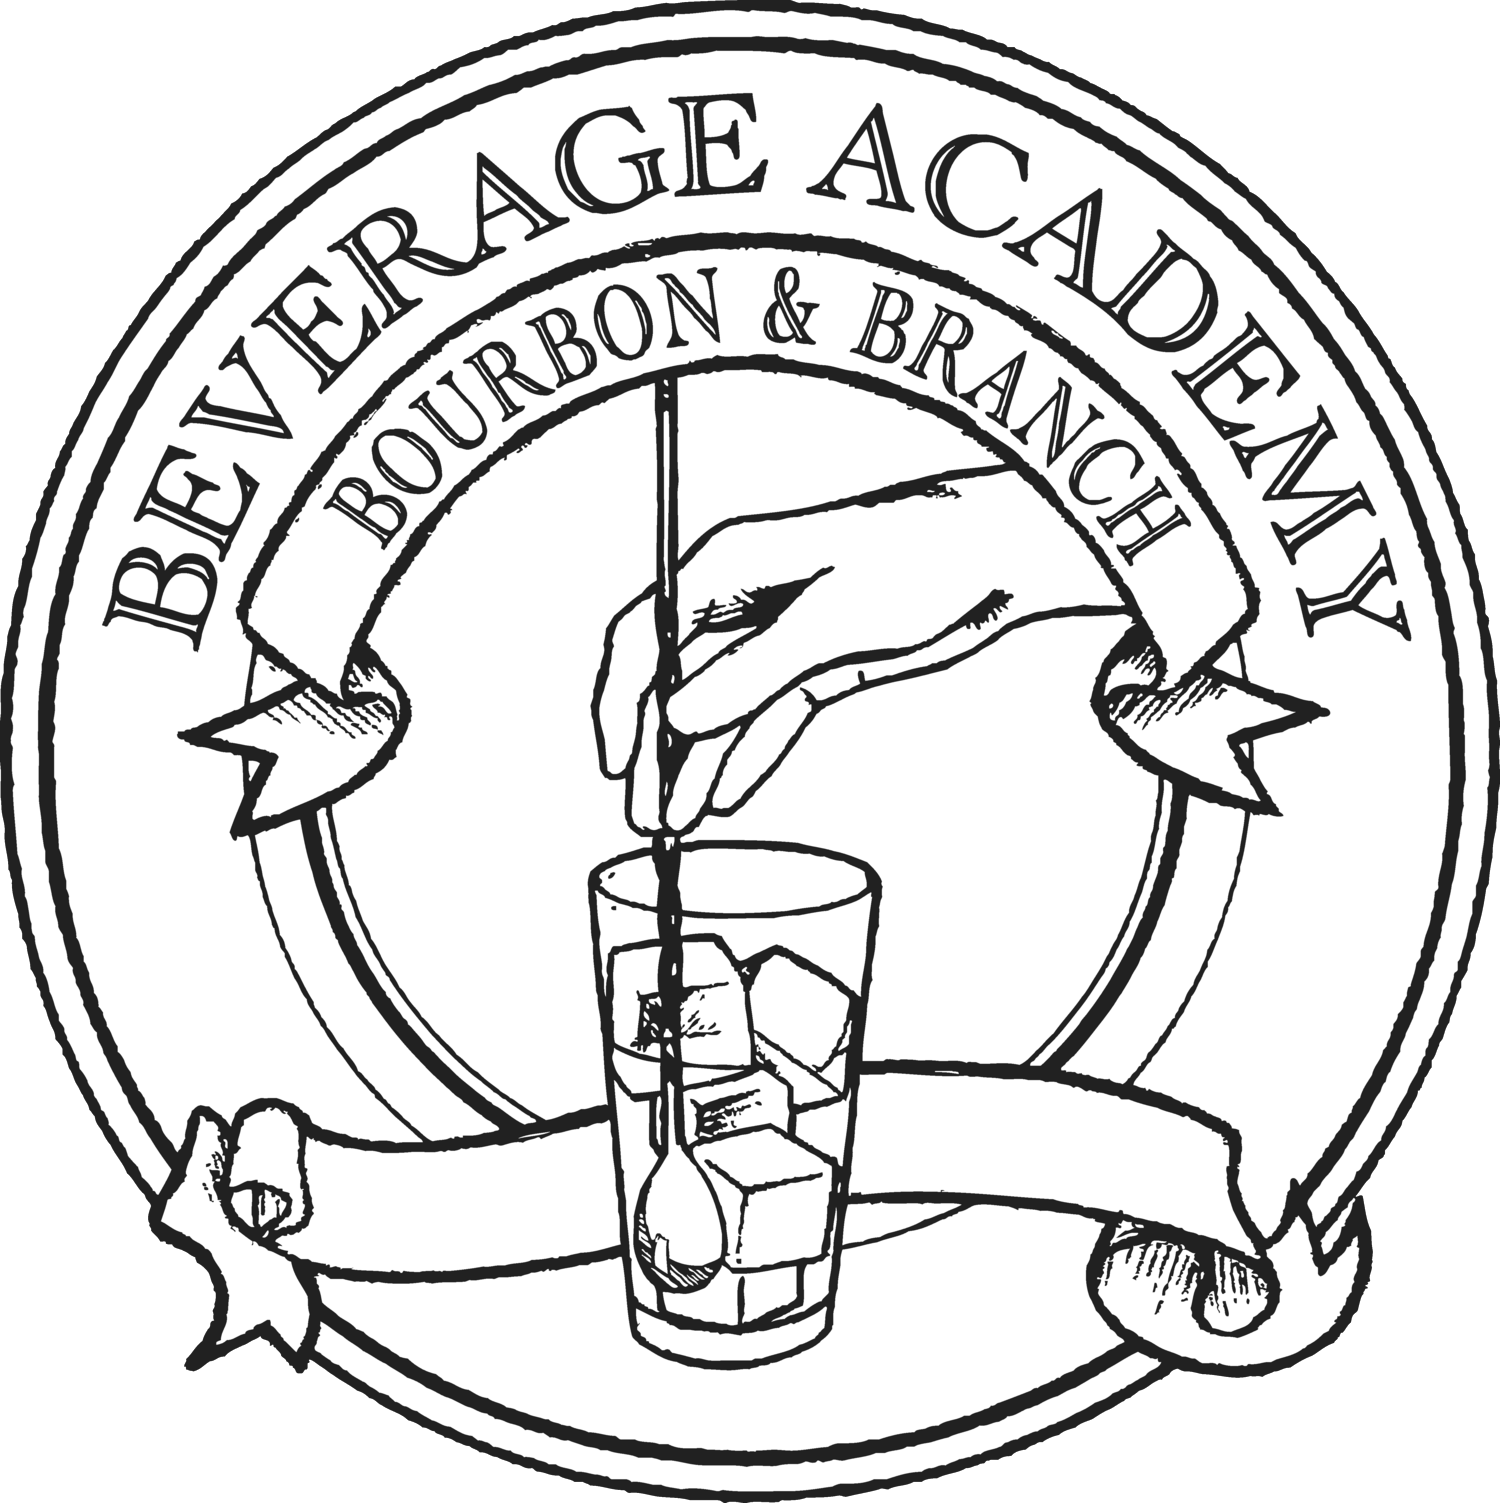 The Beverage Academy